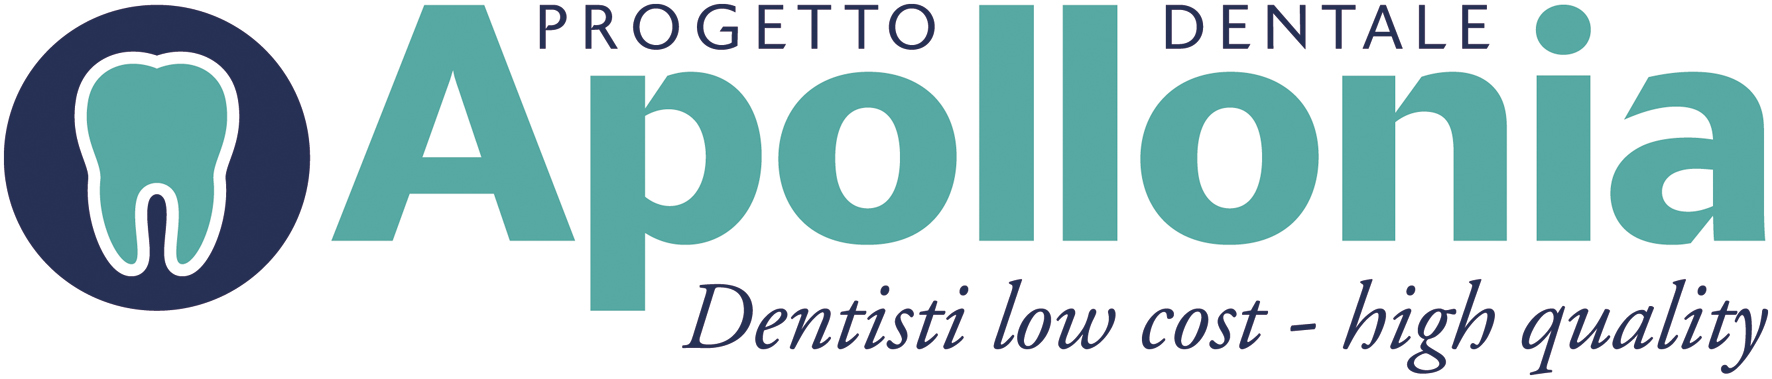 La bellezza parte dal sorriso, fai un check up da Progetto Dentale Apollonia